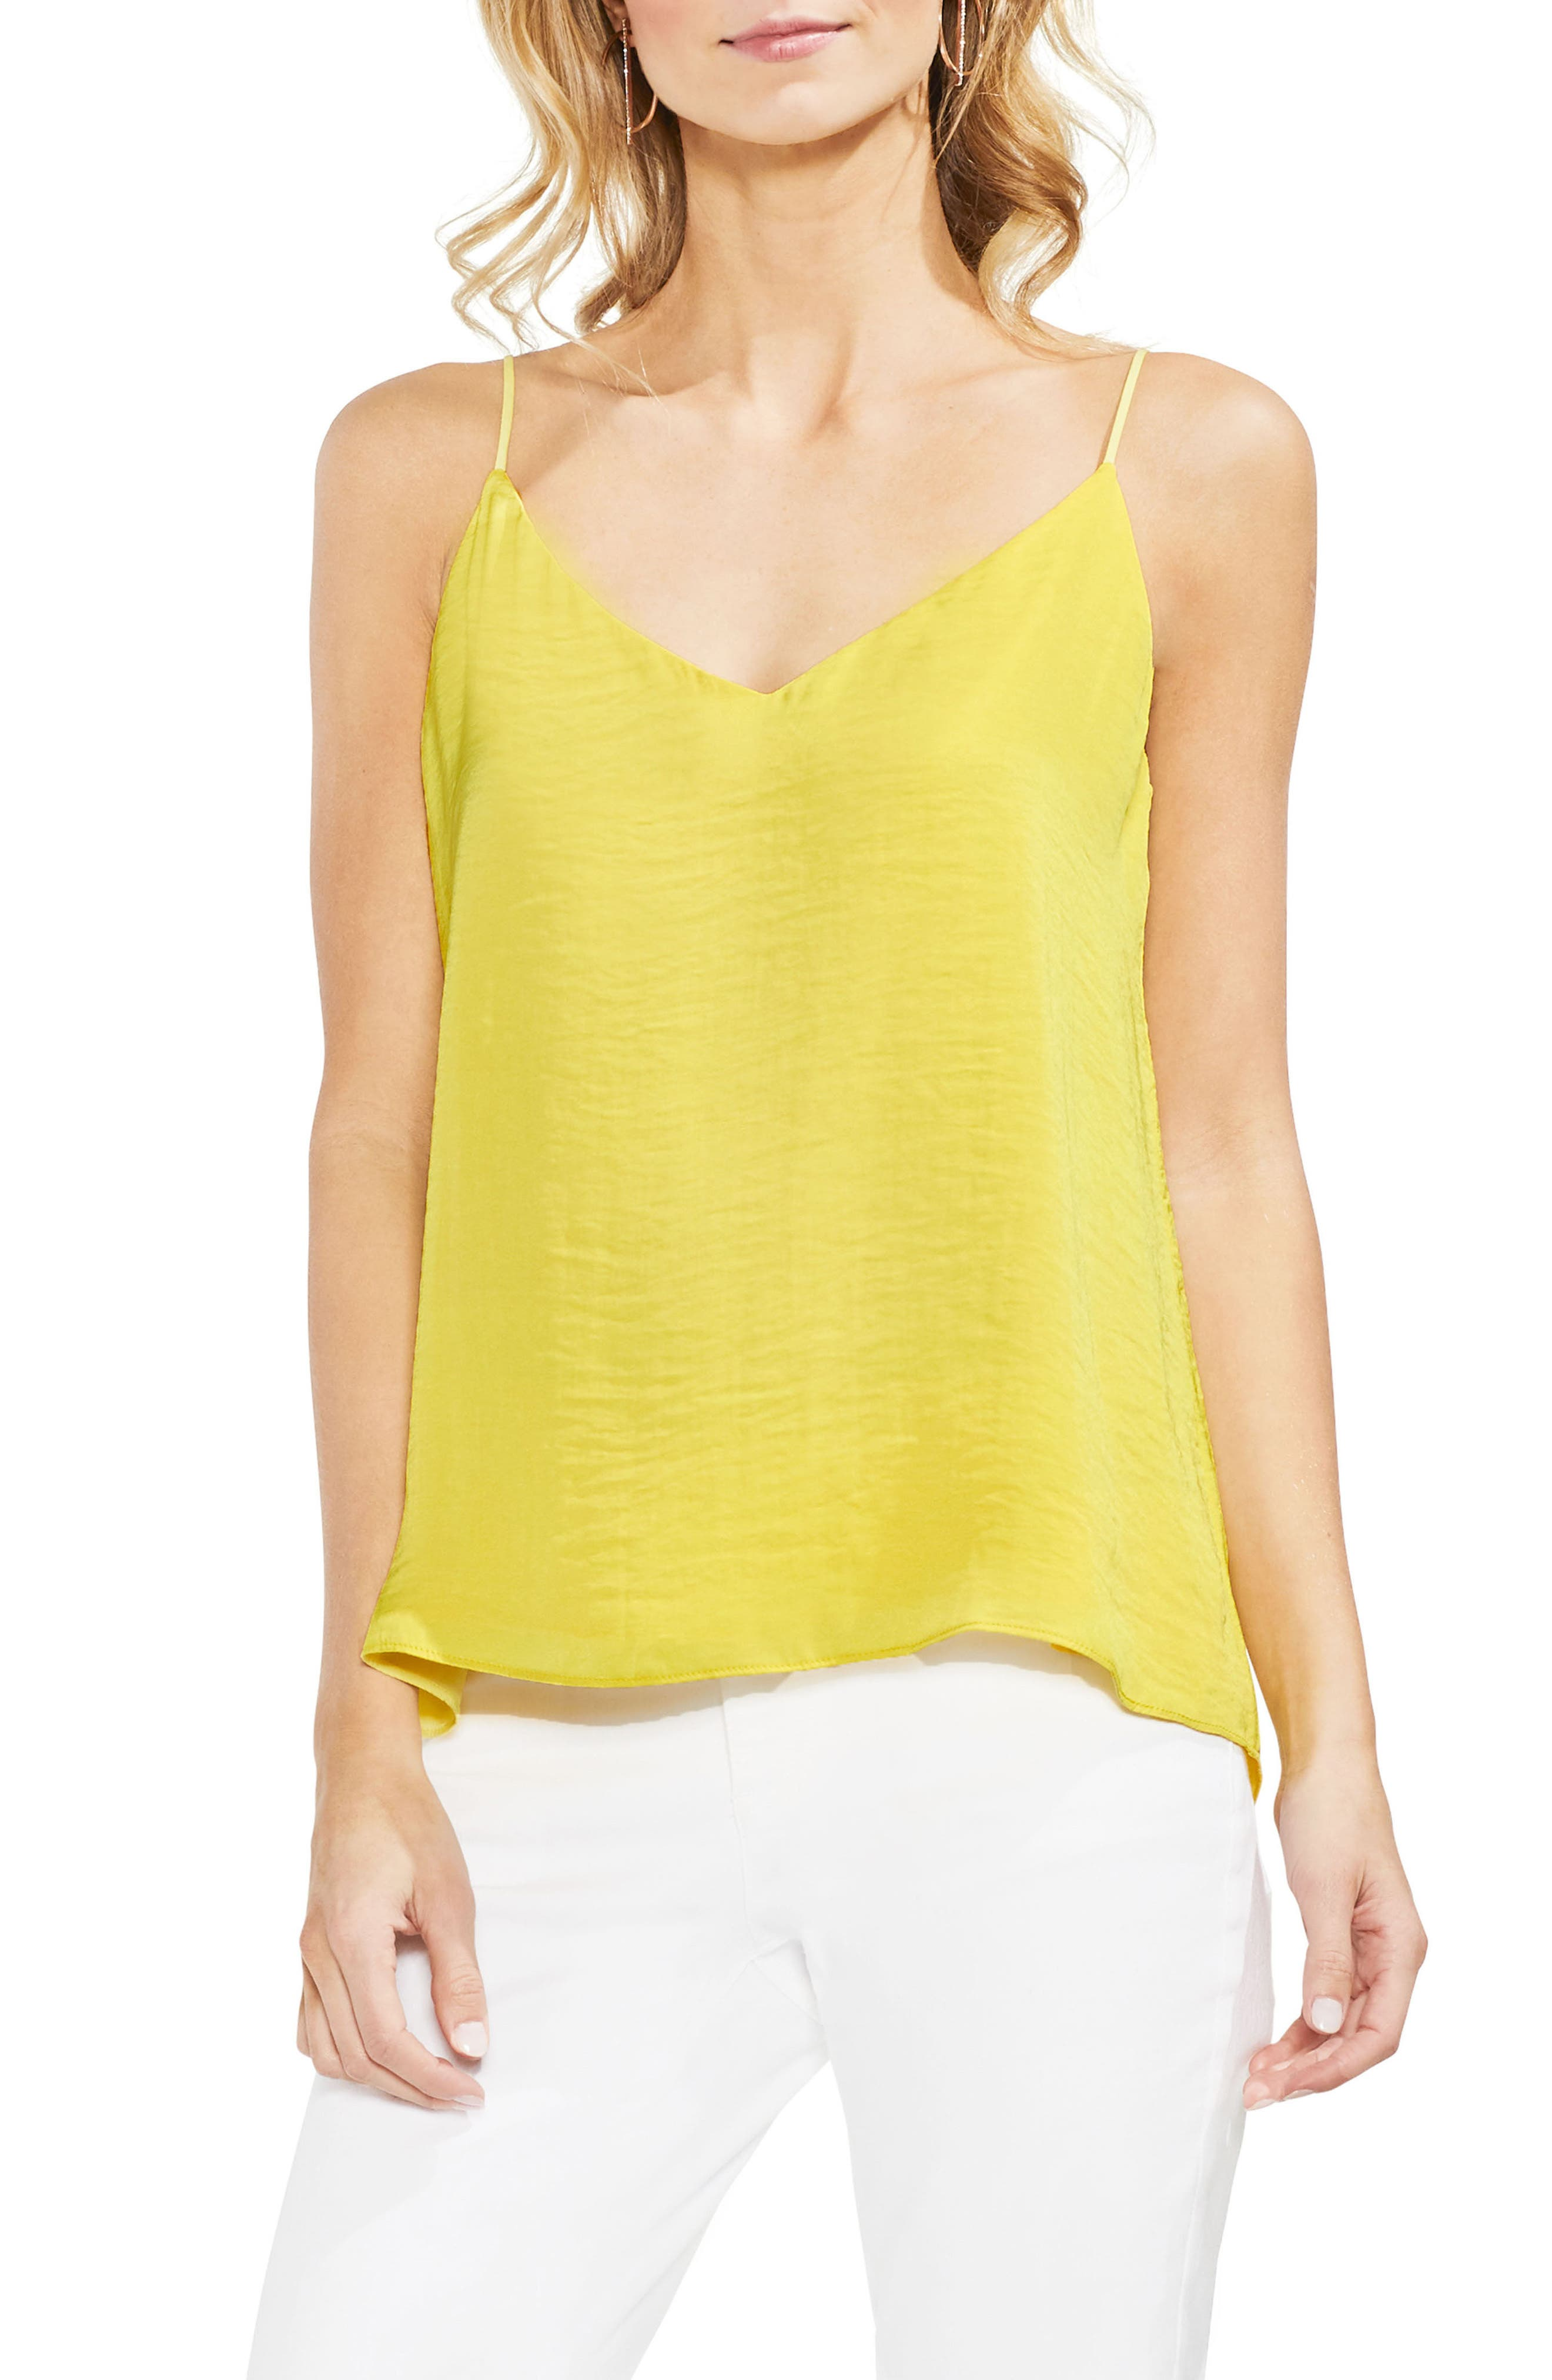 Vince Camuto Lace-Up Back Camisole